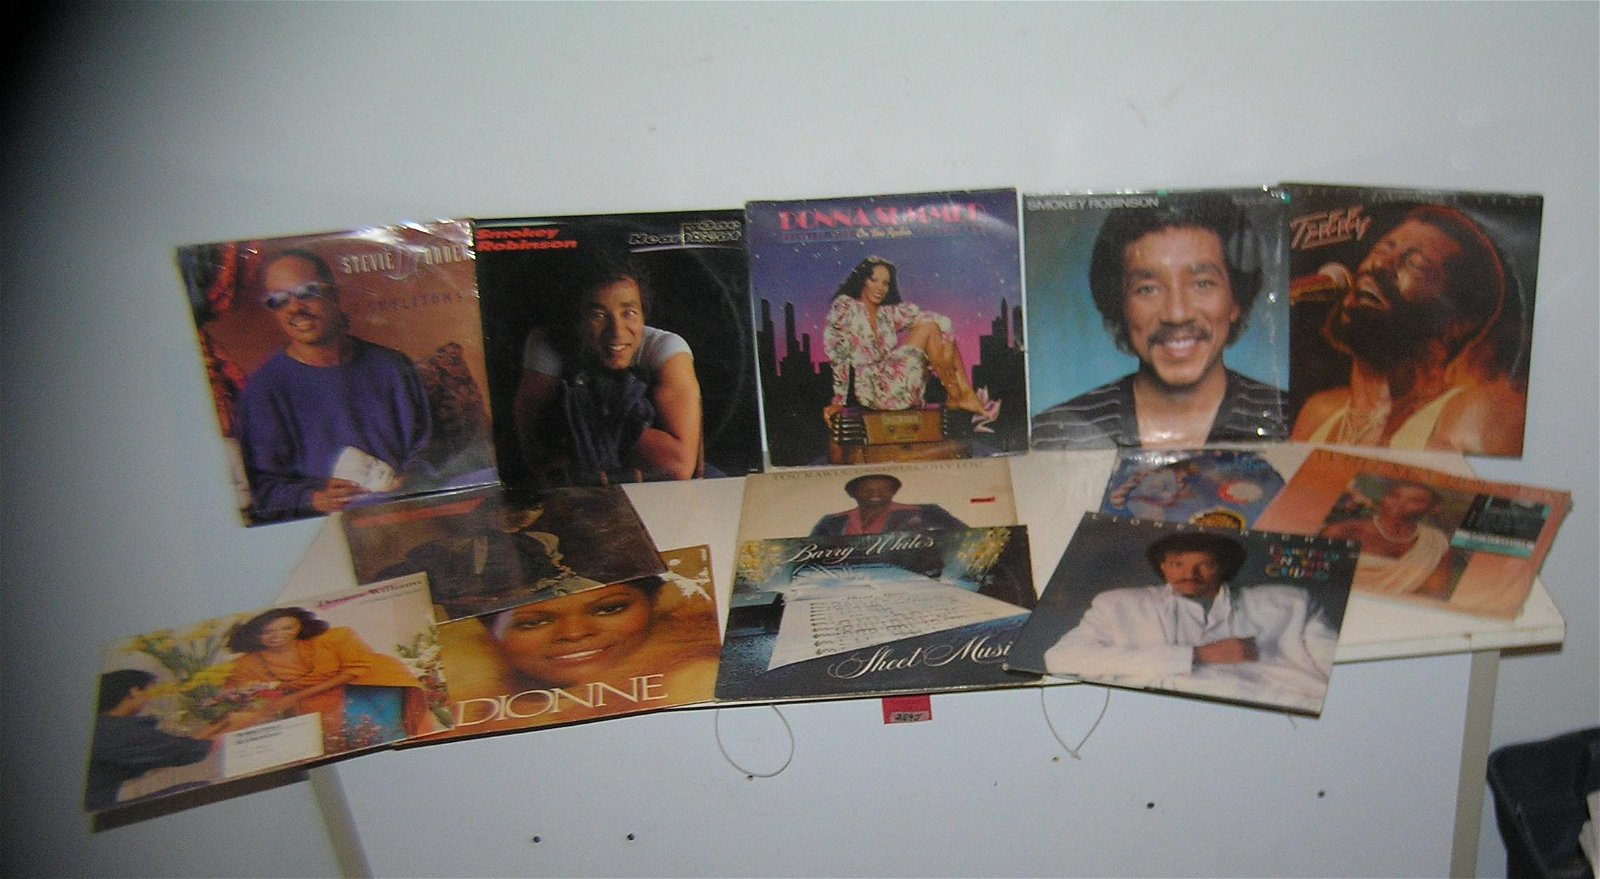 Large collection of vintage disco and dance music